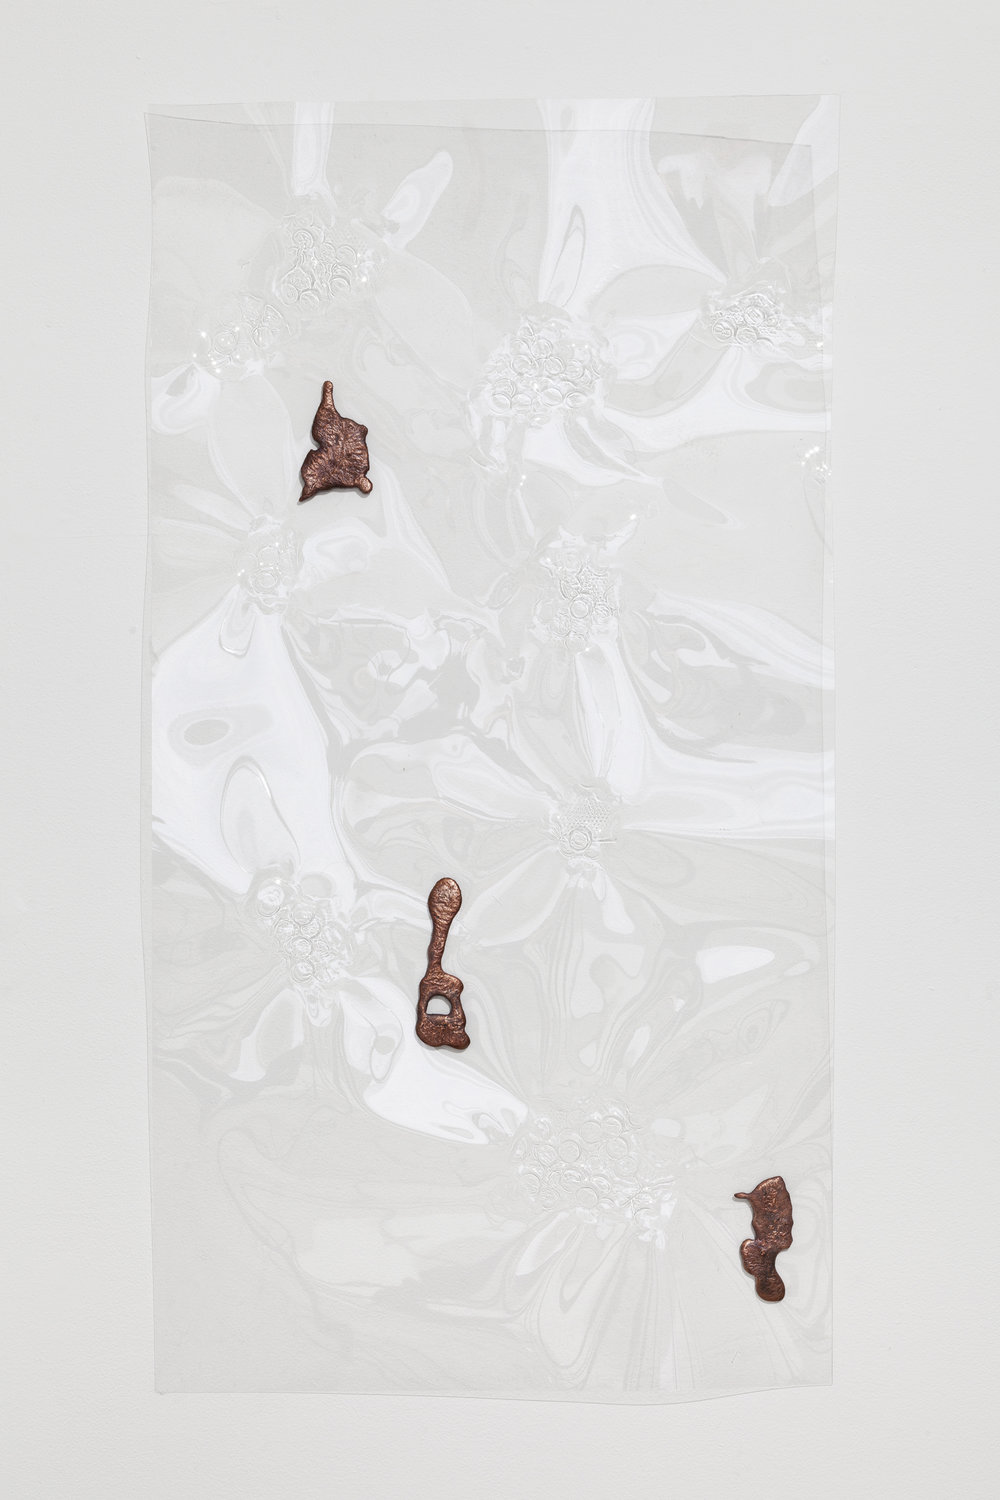 Jory Rabinovitz,  Fountain Relief 7,  2014, vacuformed plastic, melted pennies 48 x 24 in